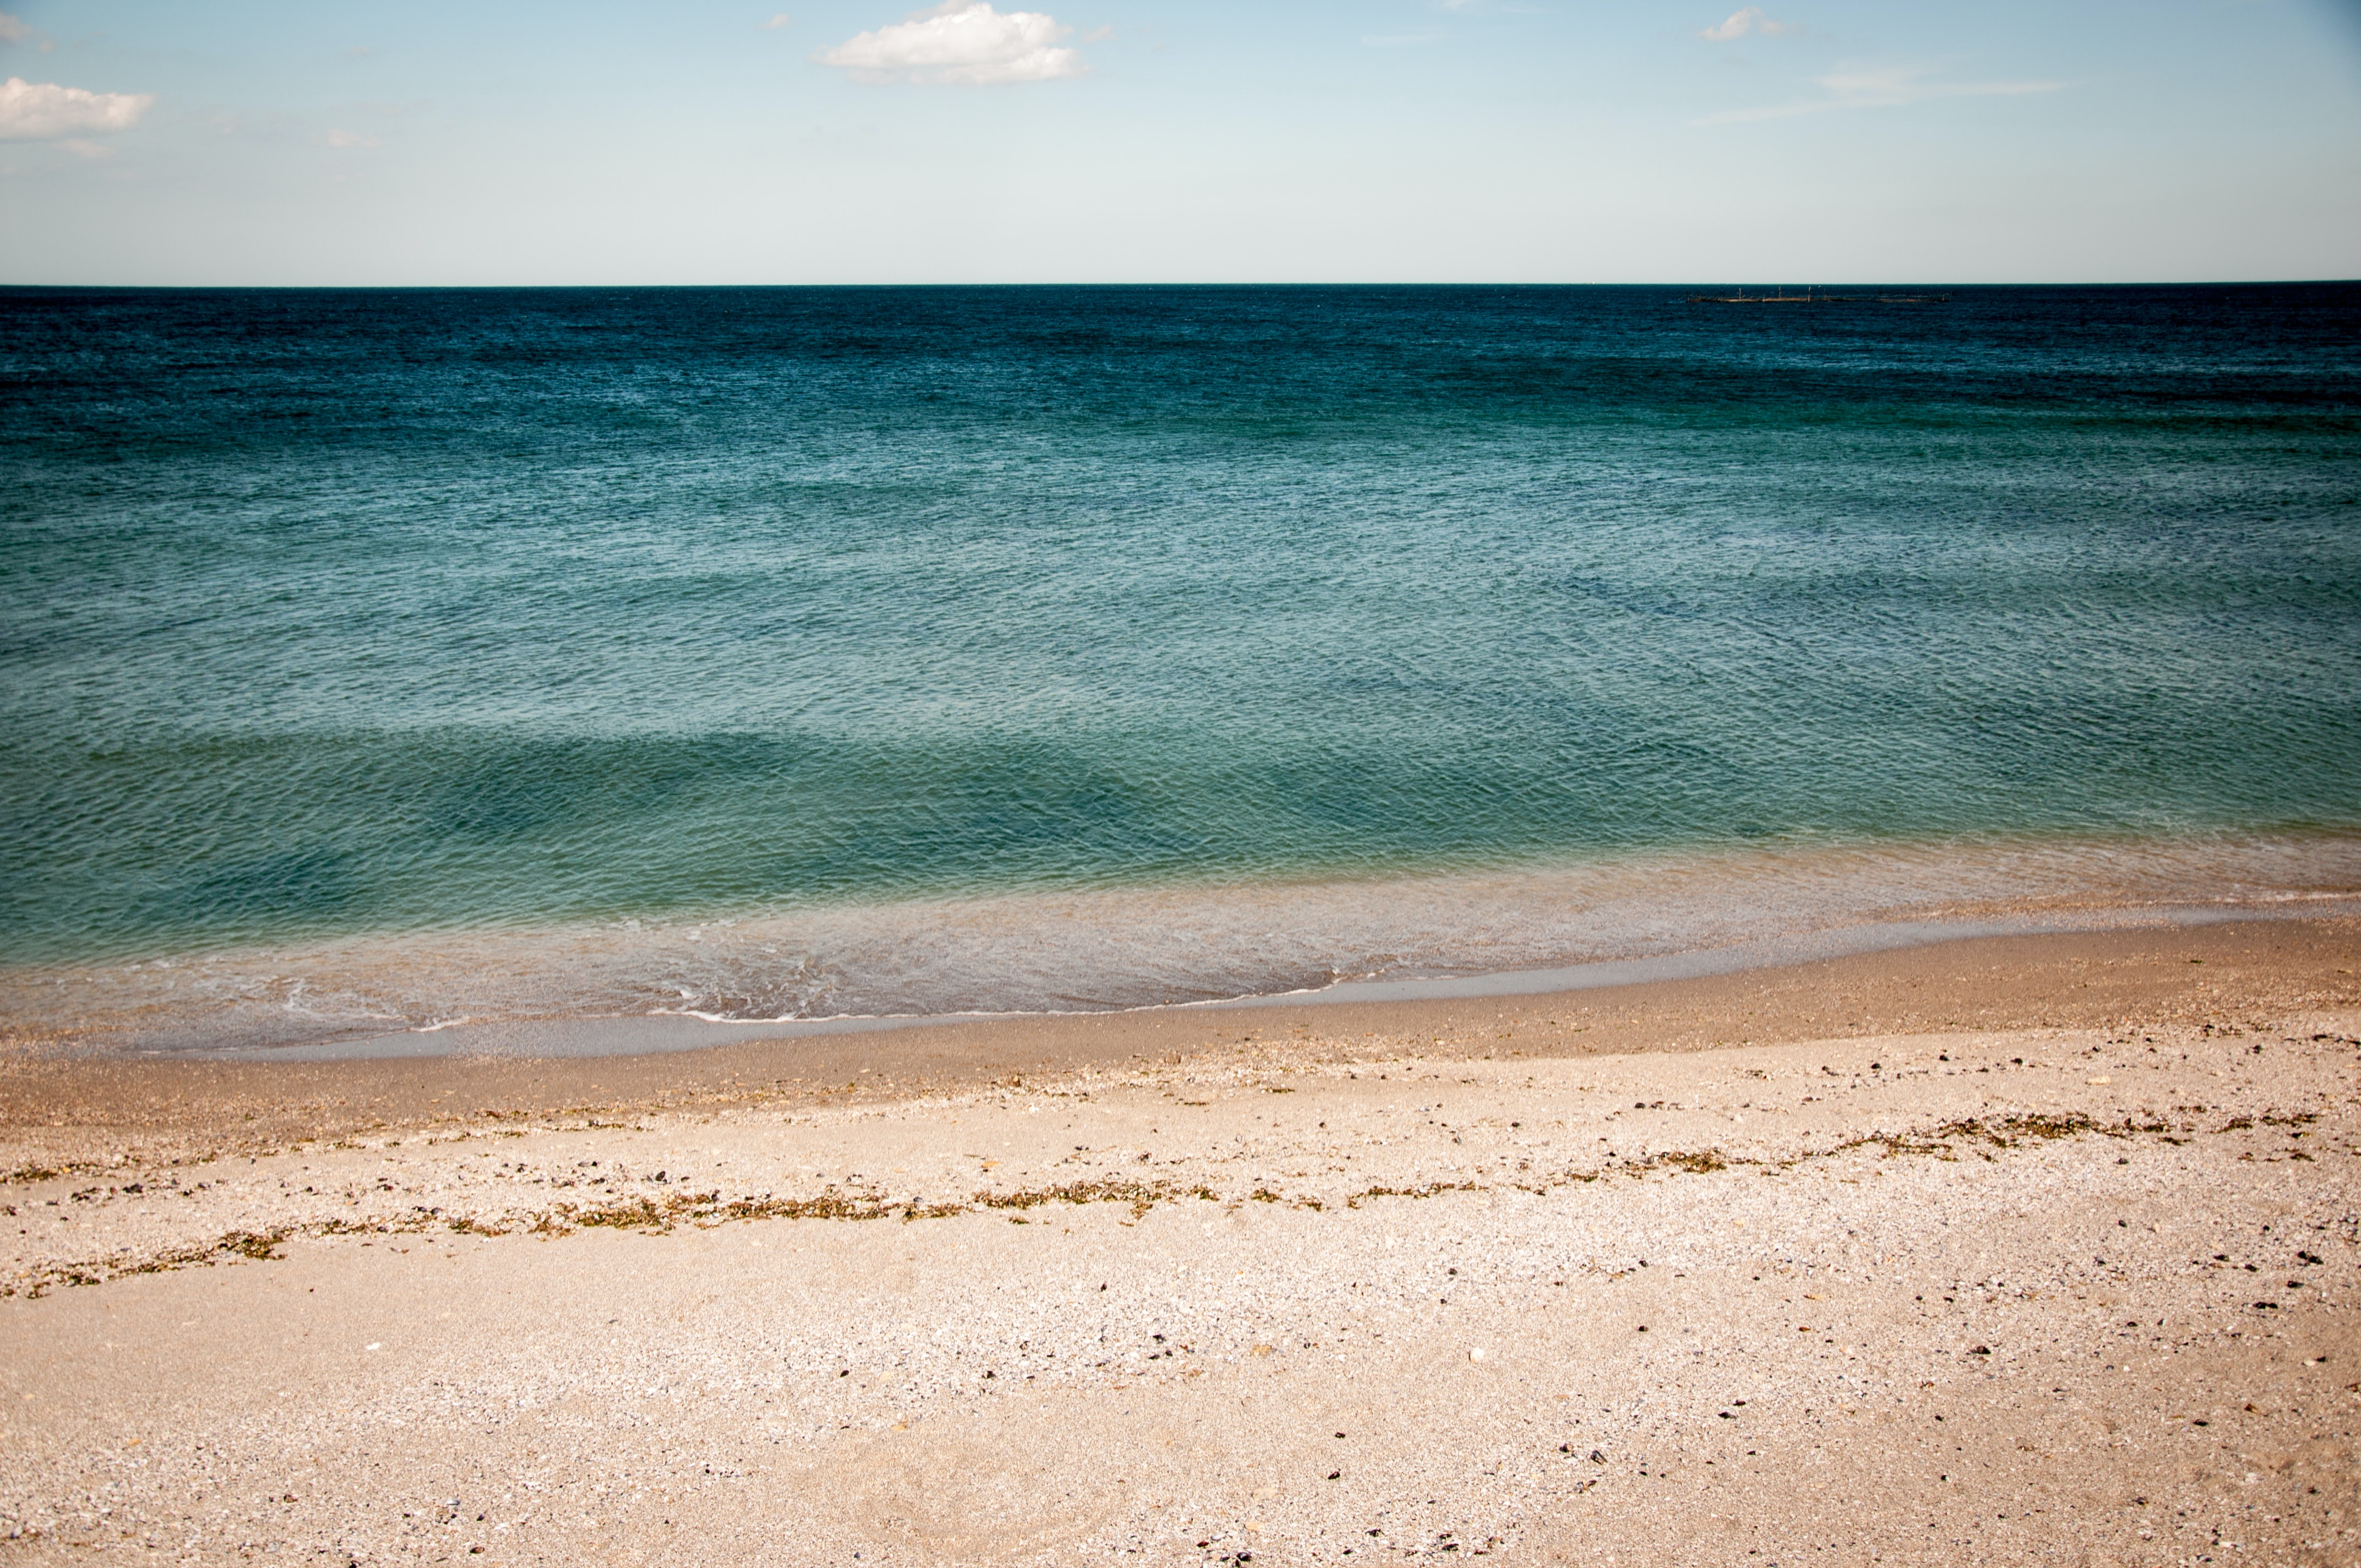 calm water of sea under blue and white sky during daytime photography